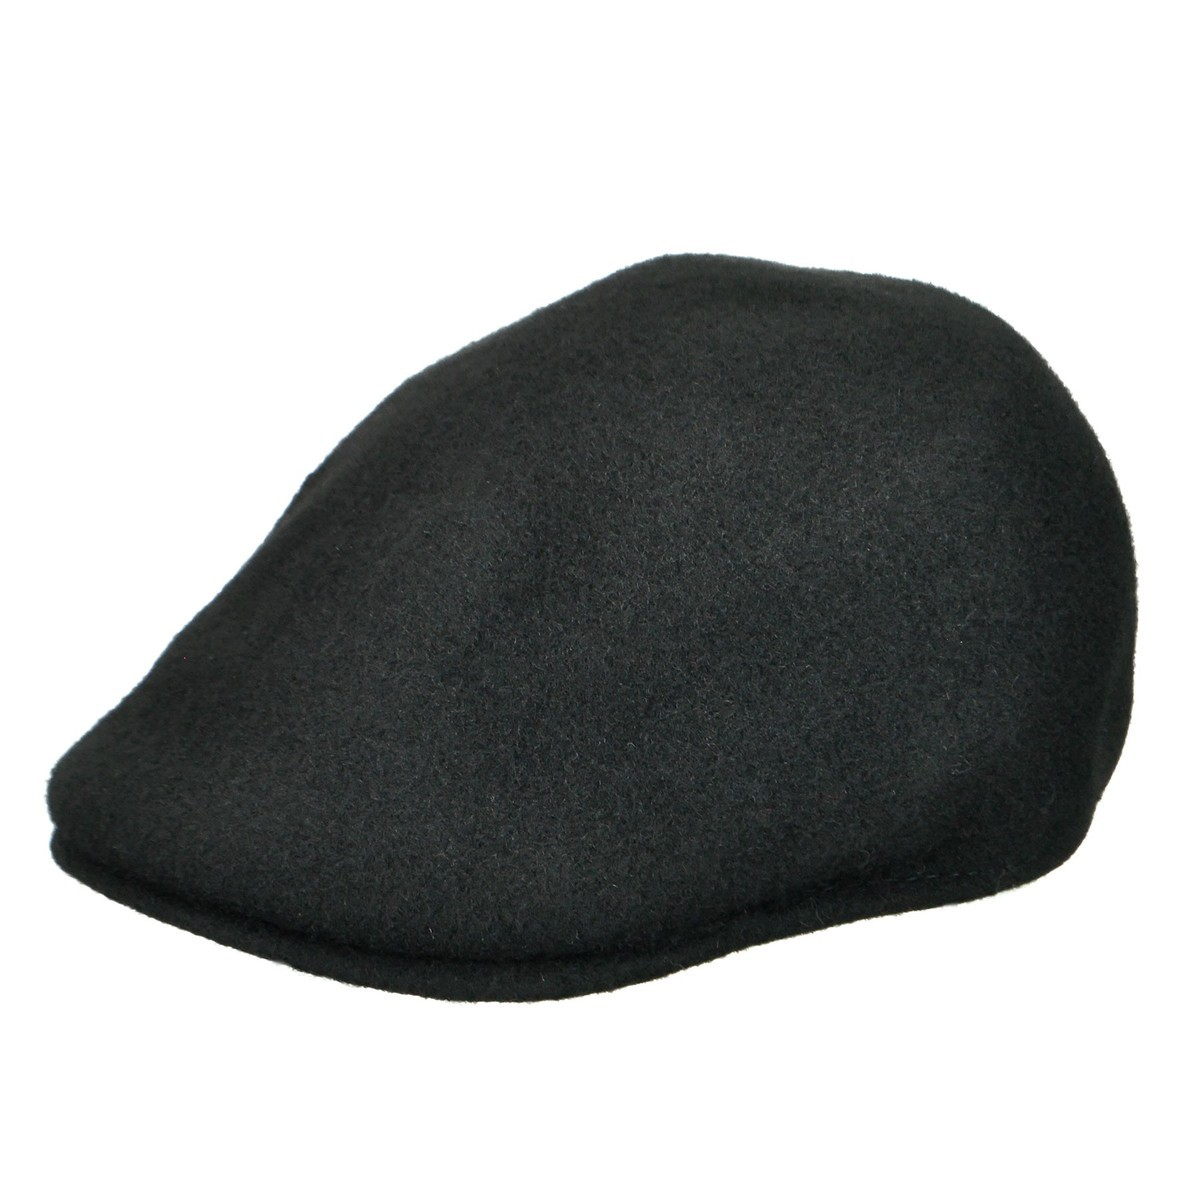 Kangol カンゴール Seamless Wool 507 Black Gold Ivy Caps & Flat Caps 帽子 Black Gold